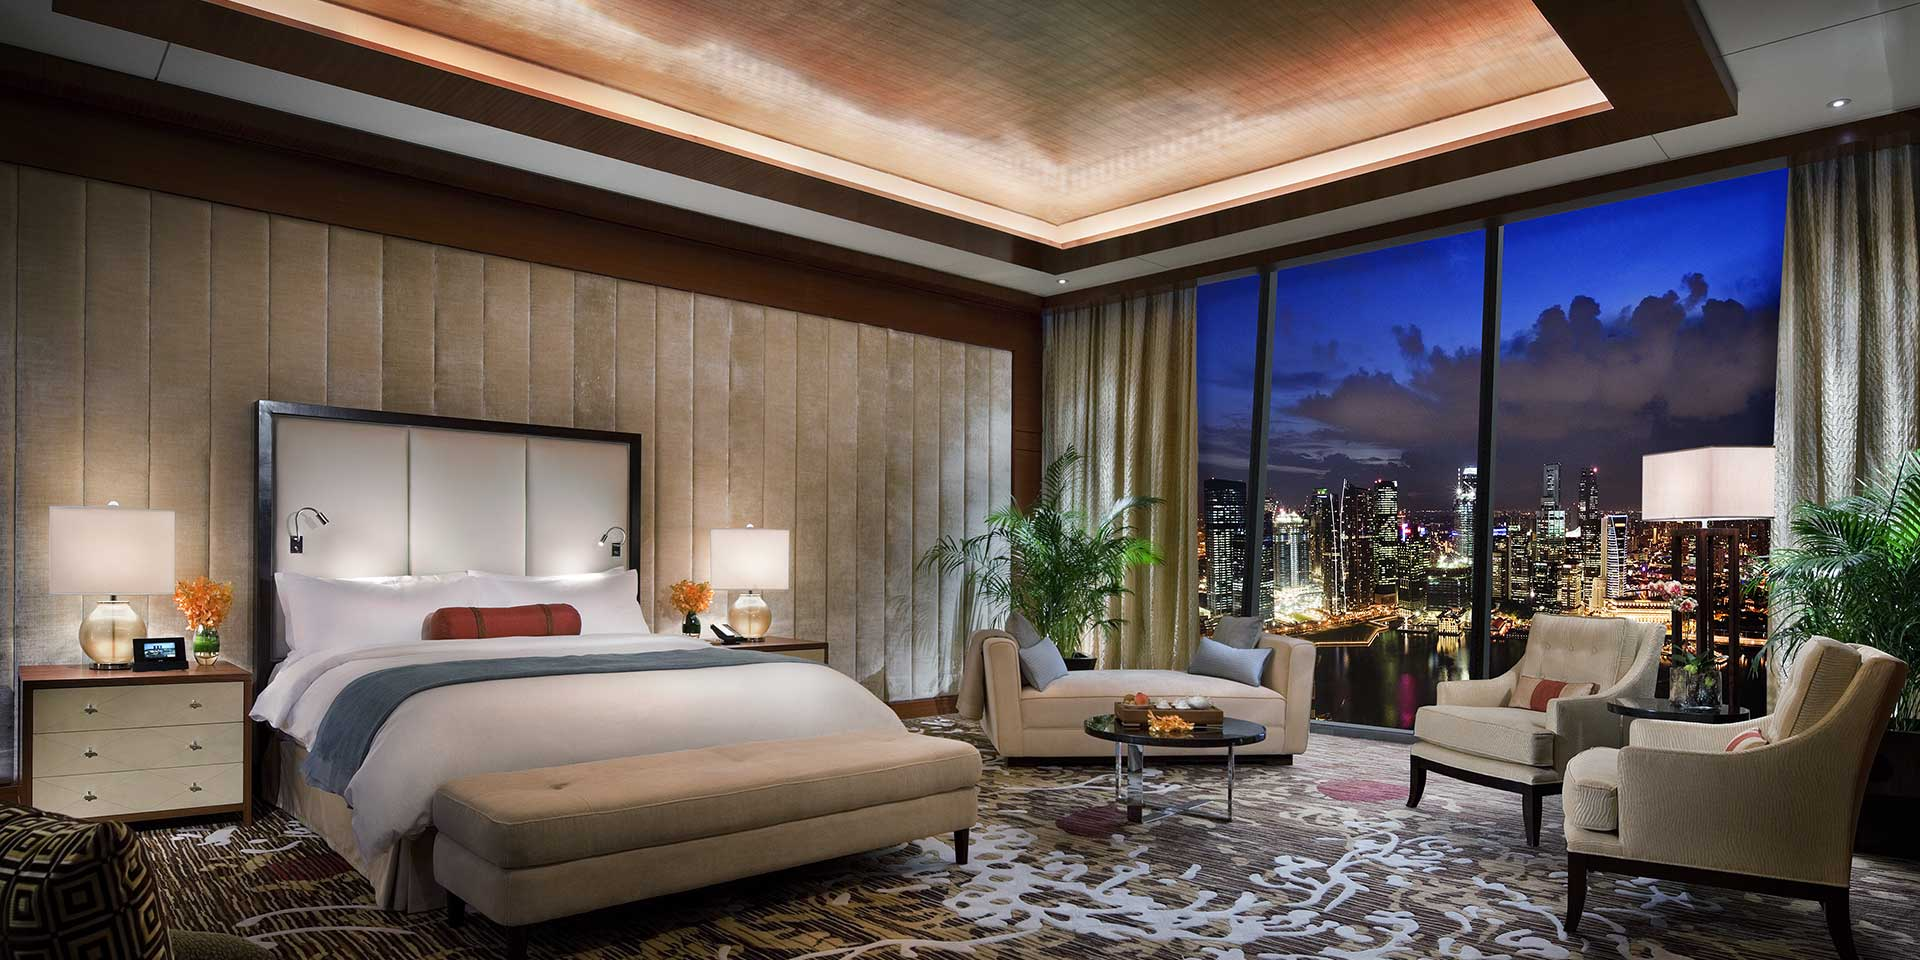 Presidential Suite Master Bedroom at Marina Bay Sands